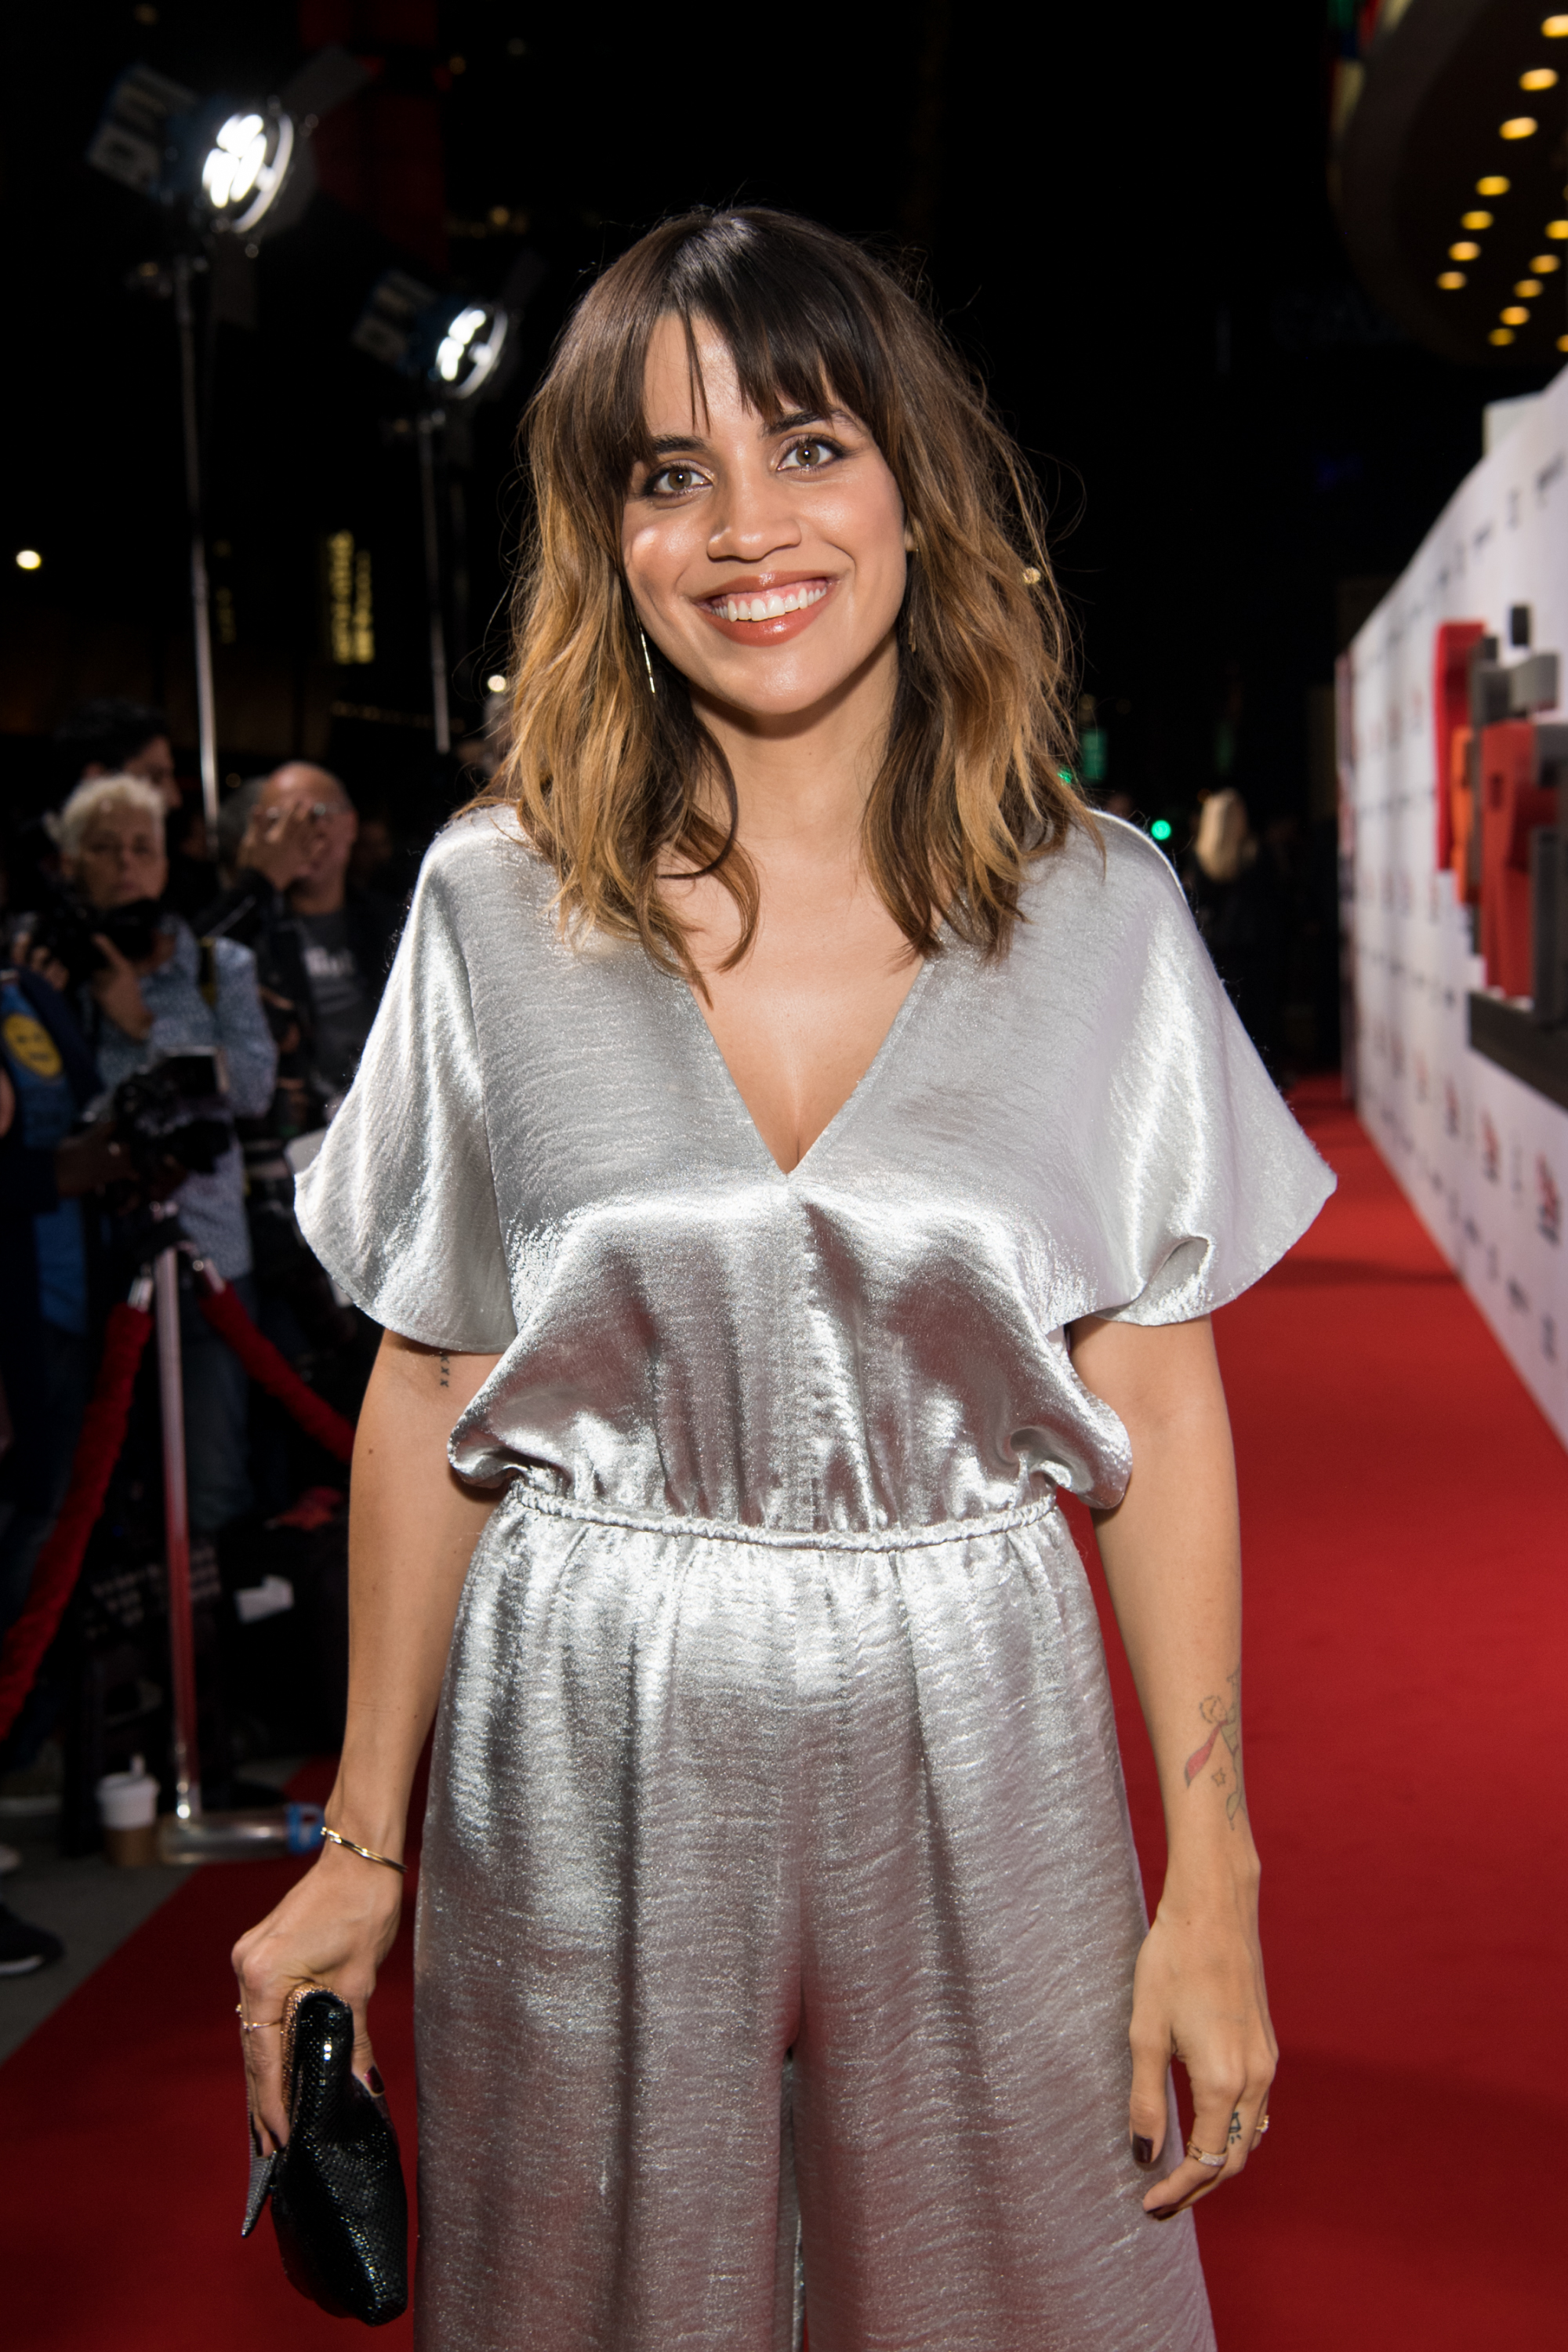 Natalie Morales attends the premiere of Amazon Studios' 'Suspiria' at ArcLight Cinerama Dome on October 24, 2018 in Hollywood, California. (Getty Images)